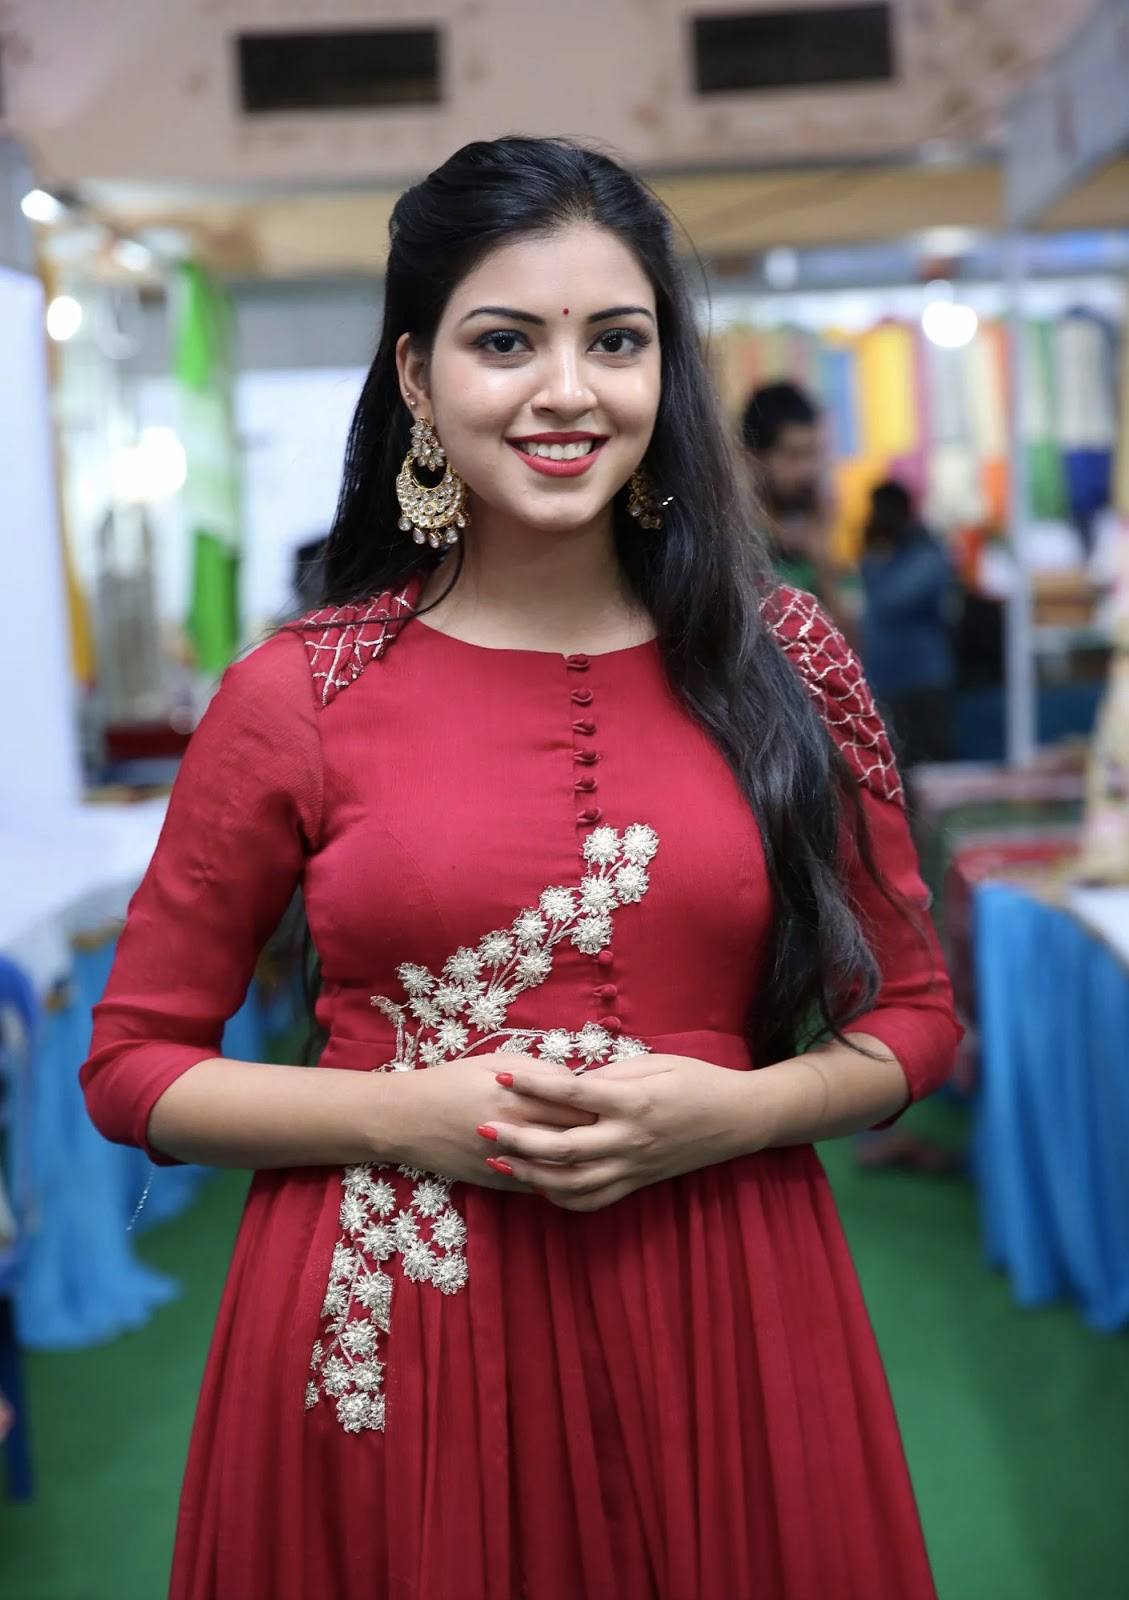 Yashu mashetty photos, images, latest, yashu mashetty age, yashu mashetty movies